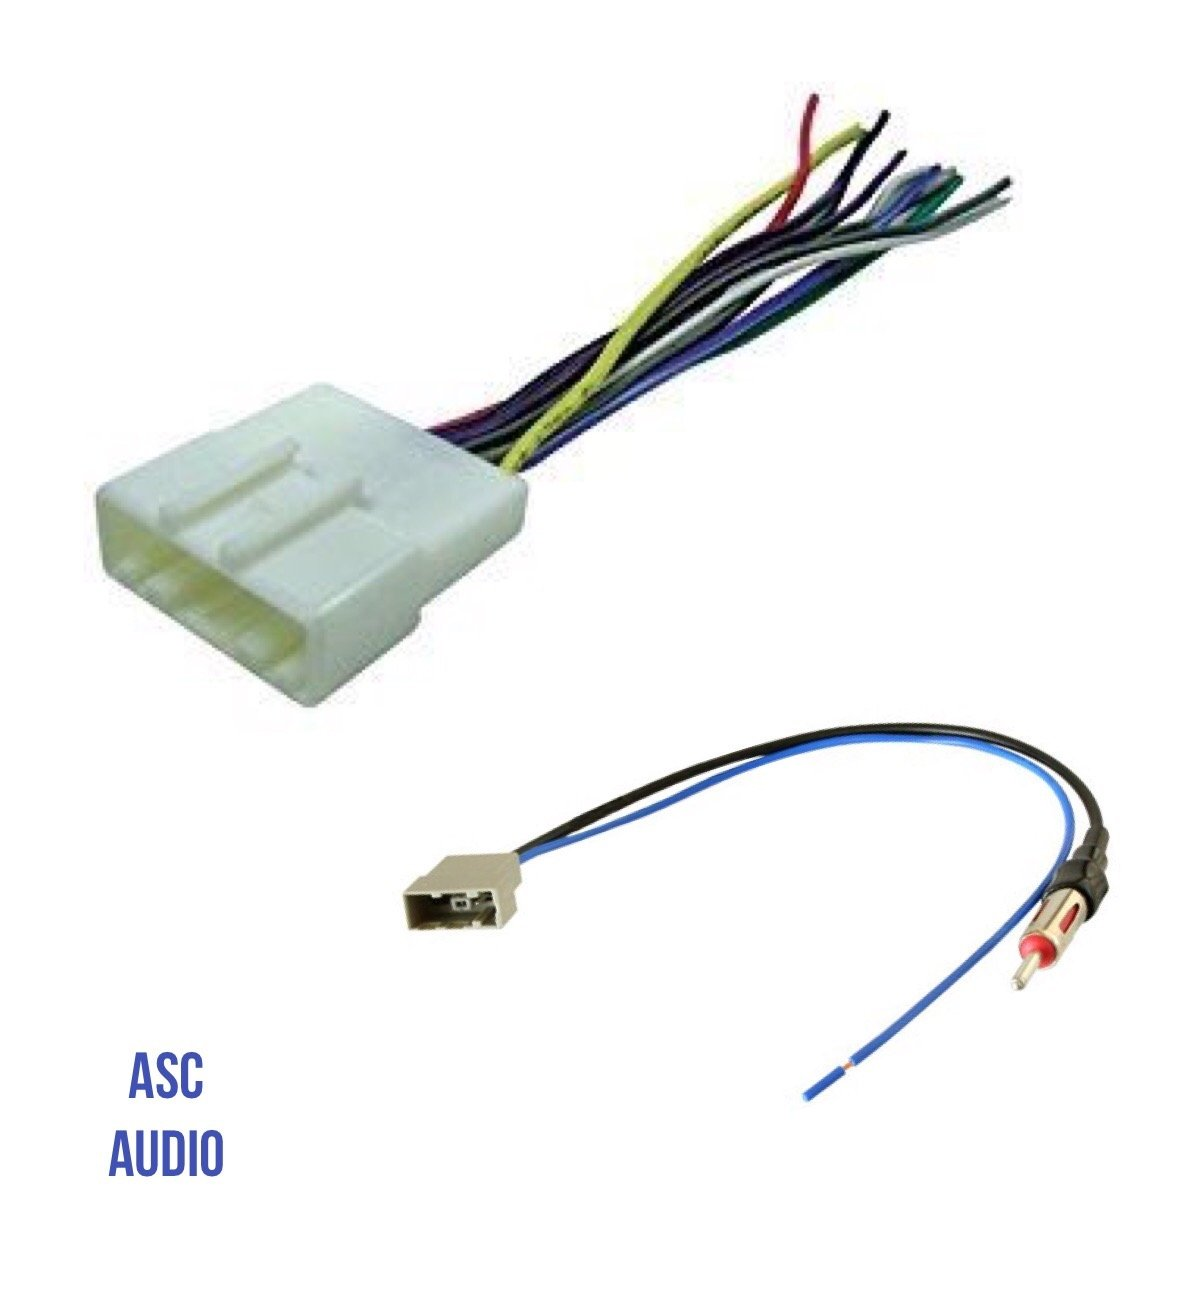 ASC Audio Car Stereo Radio Wire Harness and Antenna Adapter to Aftermarket Radio for some Infiniti Nissan Subaru etc.- listed below